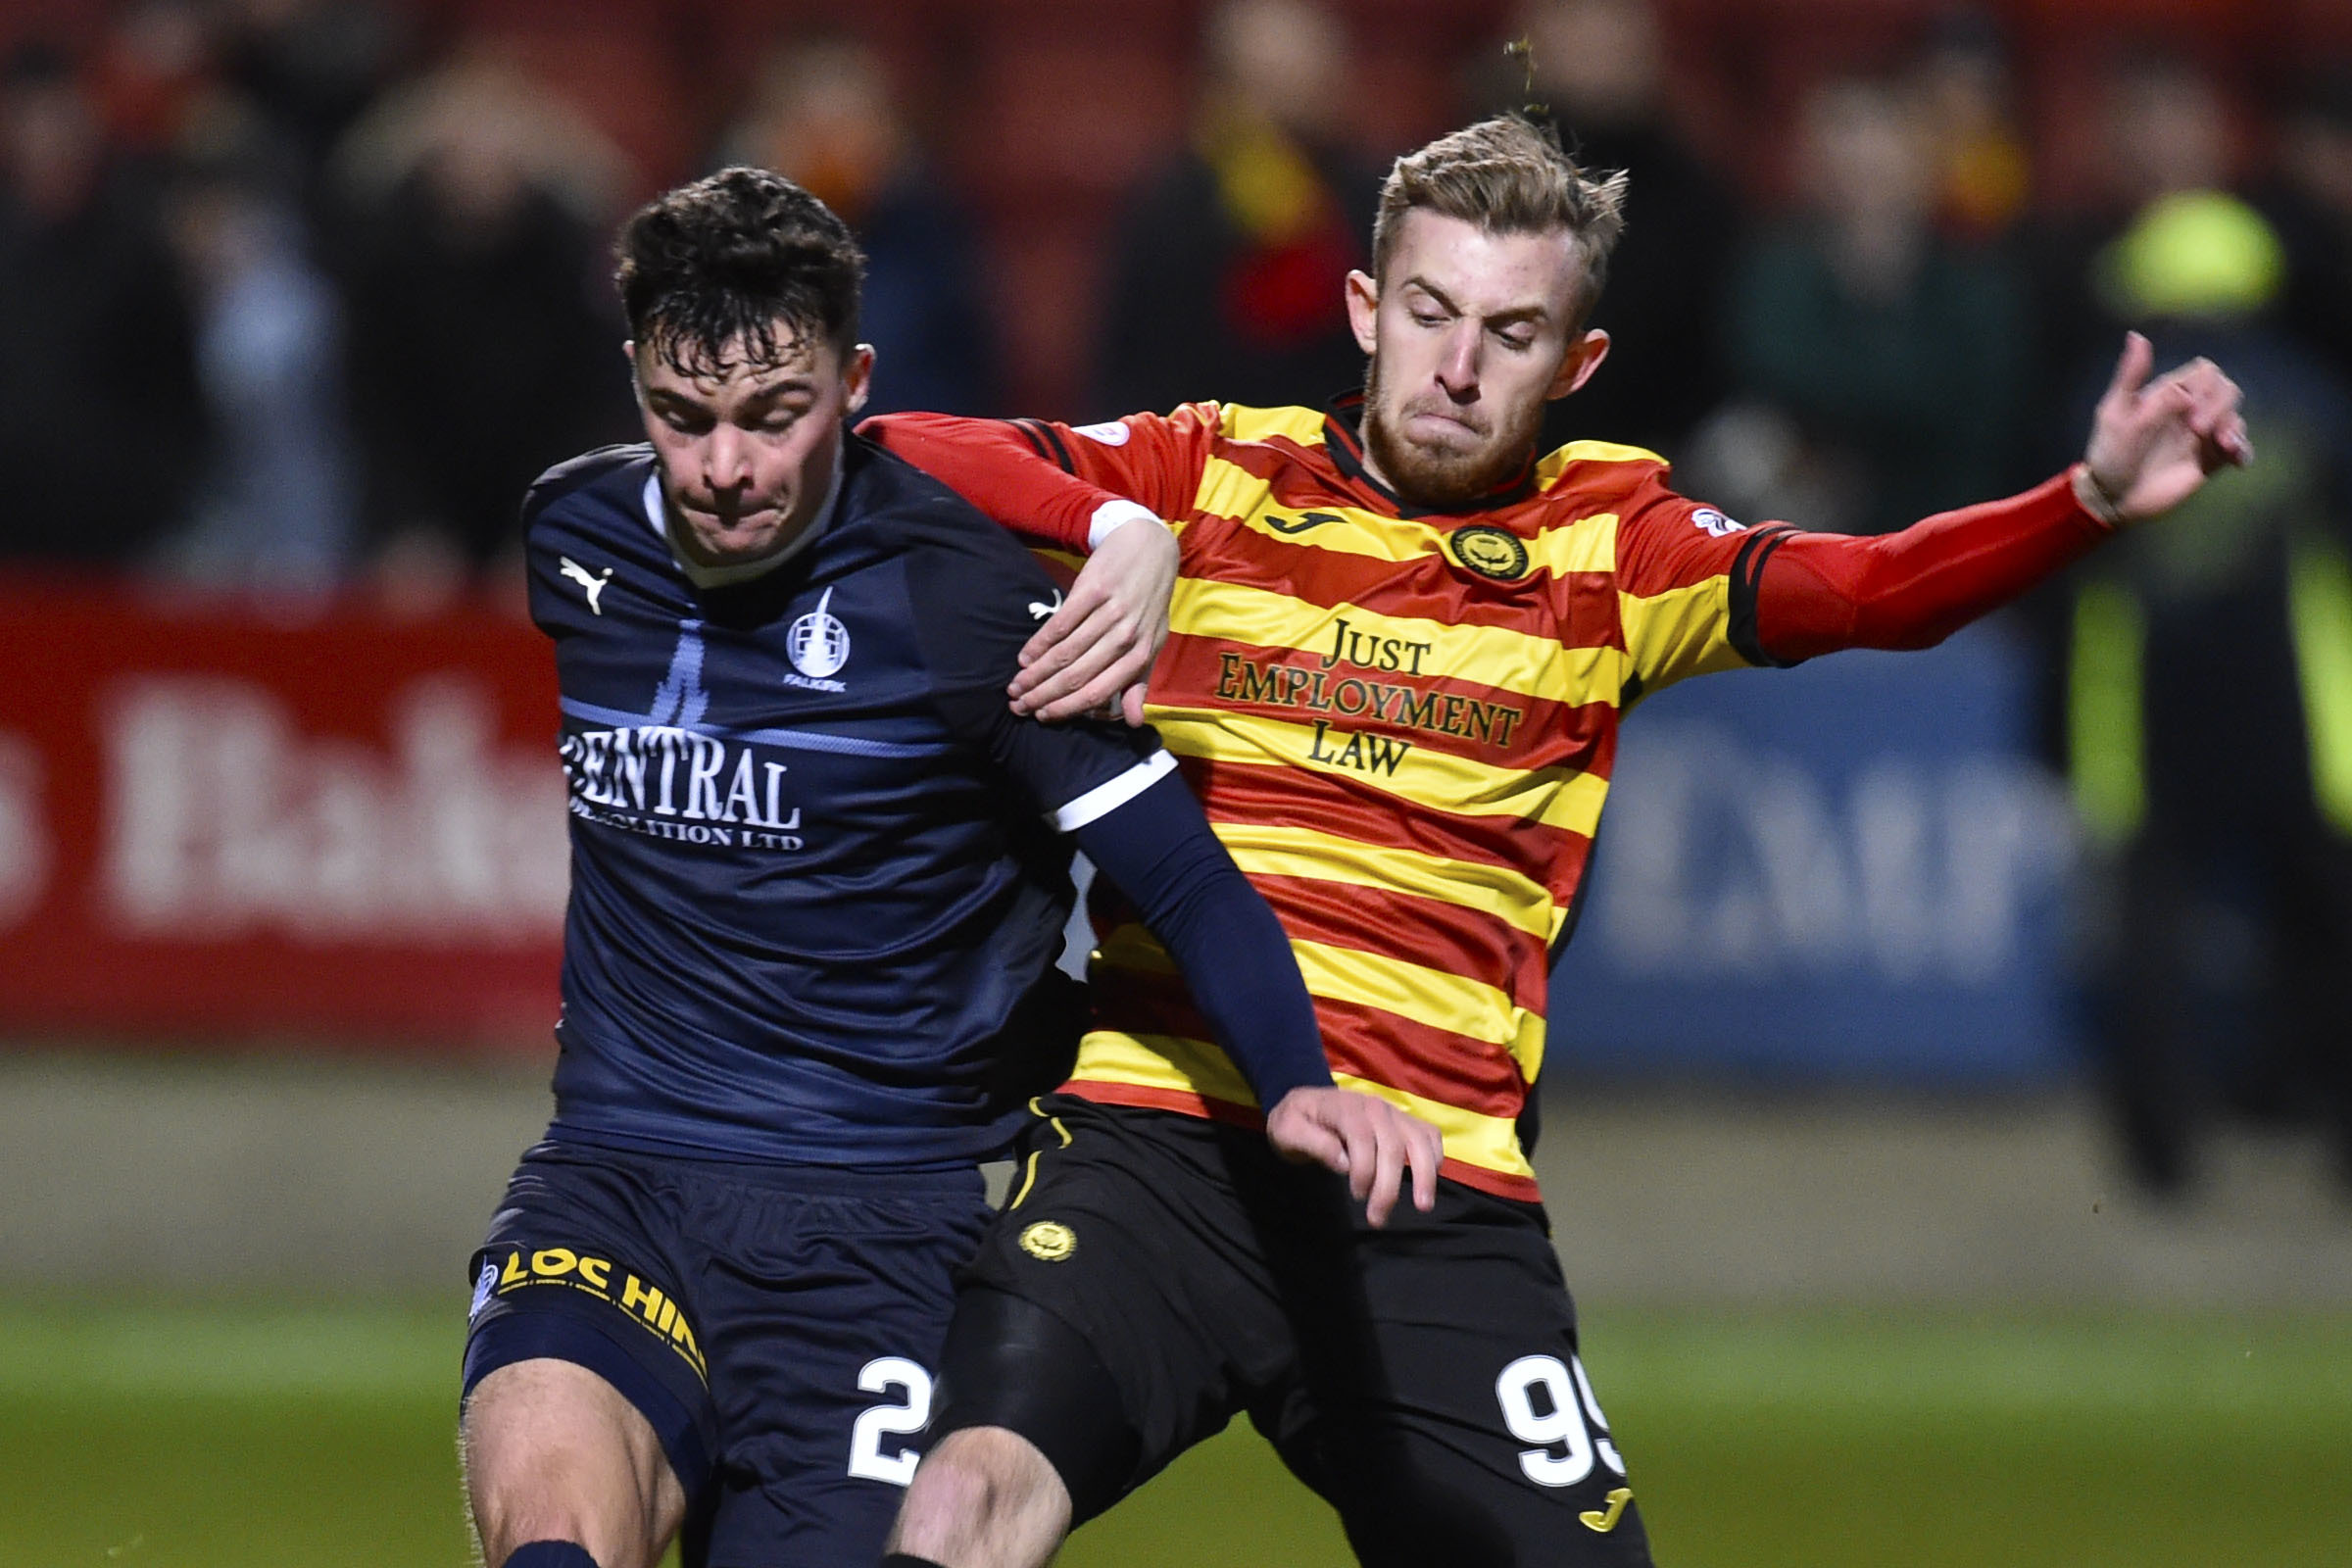 Ally Roy determined to get off the mark for Partick Thistle after being robbed by dodgy decision